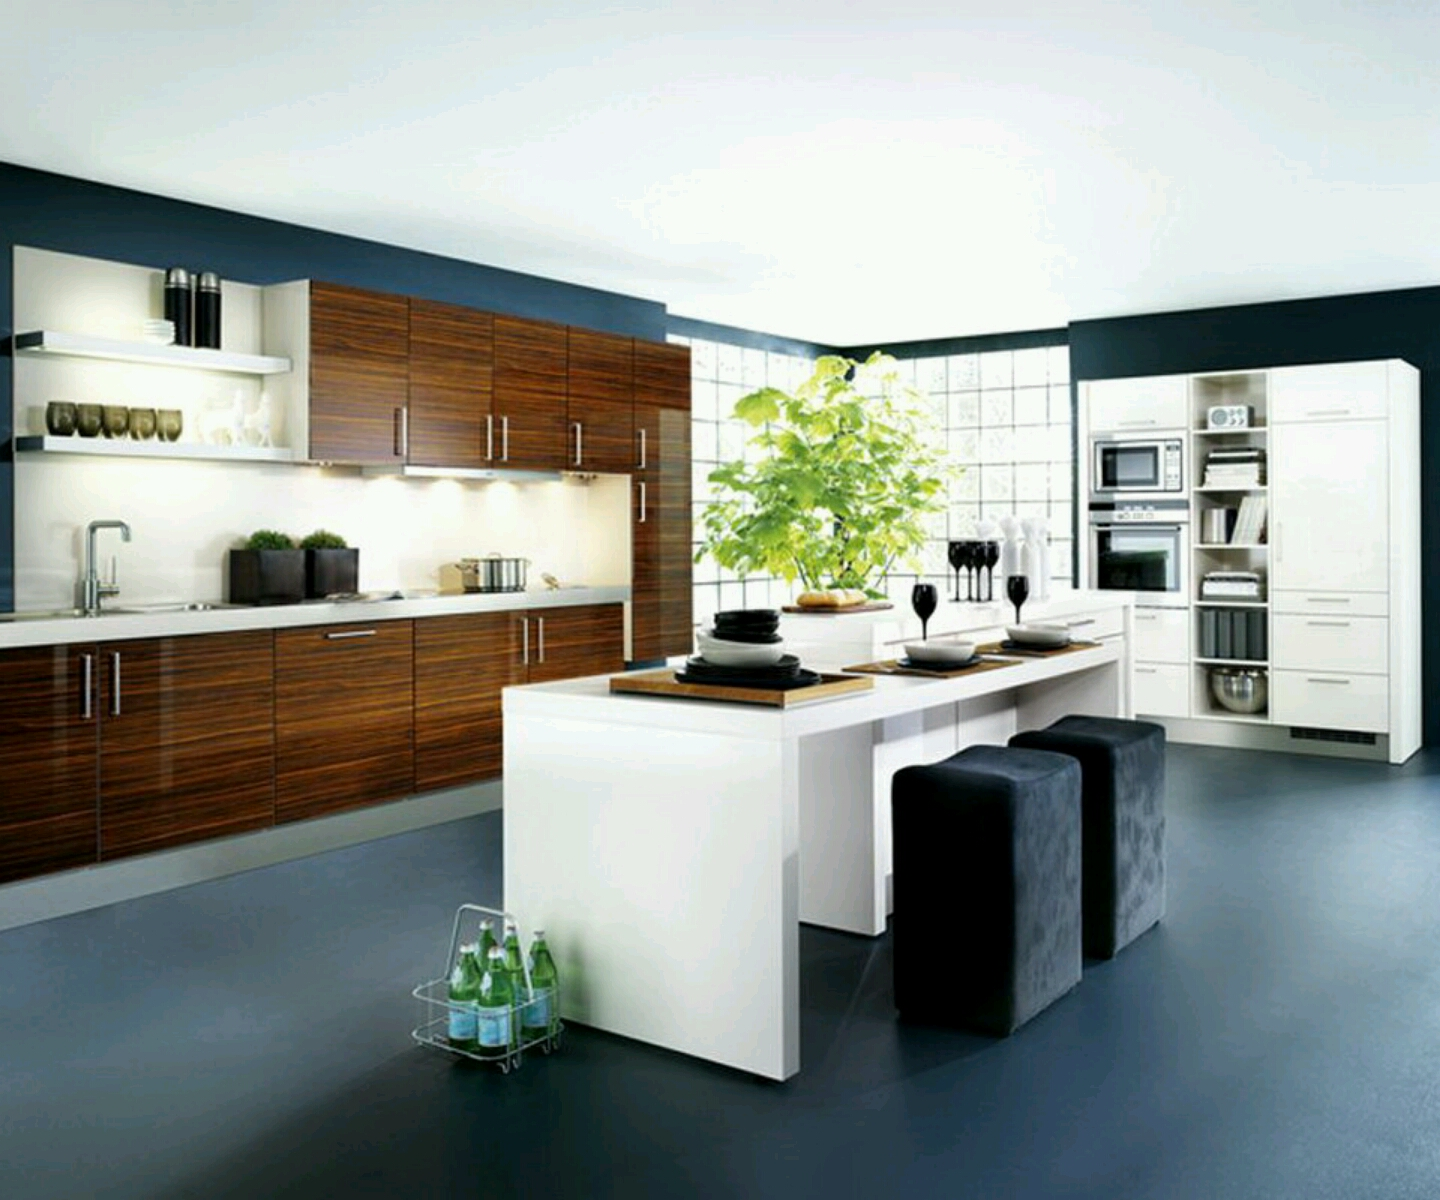 New home designs latest kitchen cabinets designs modern for Modern kitchen cabinet designs